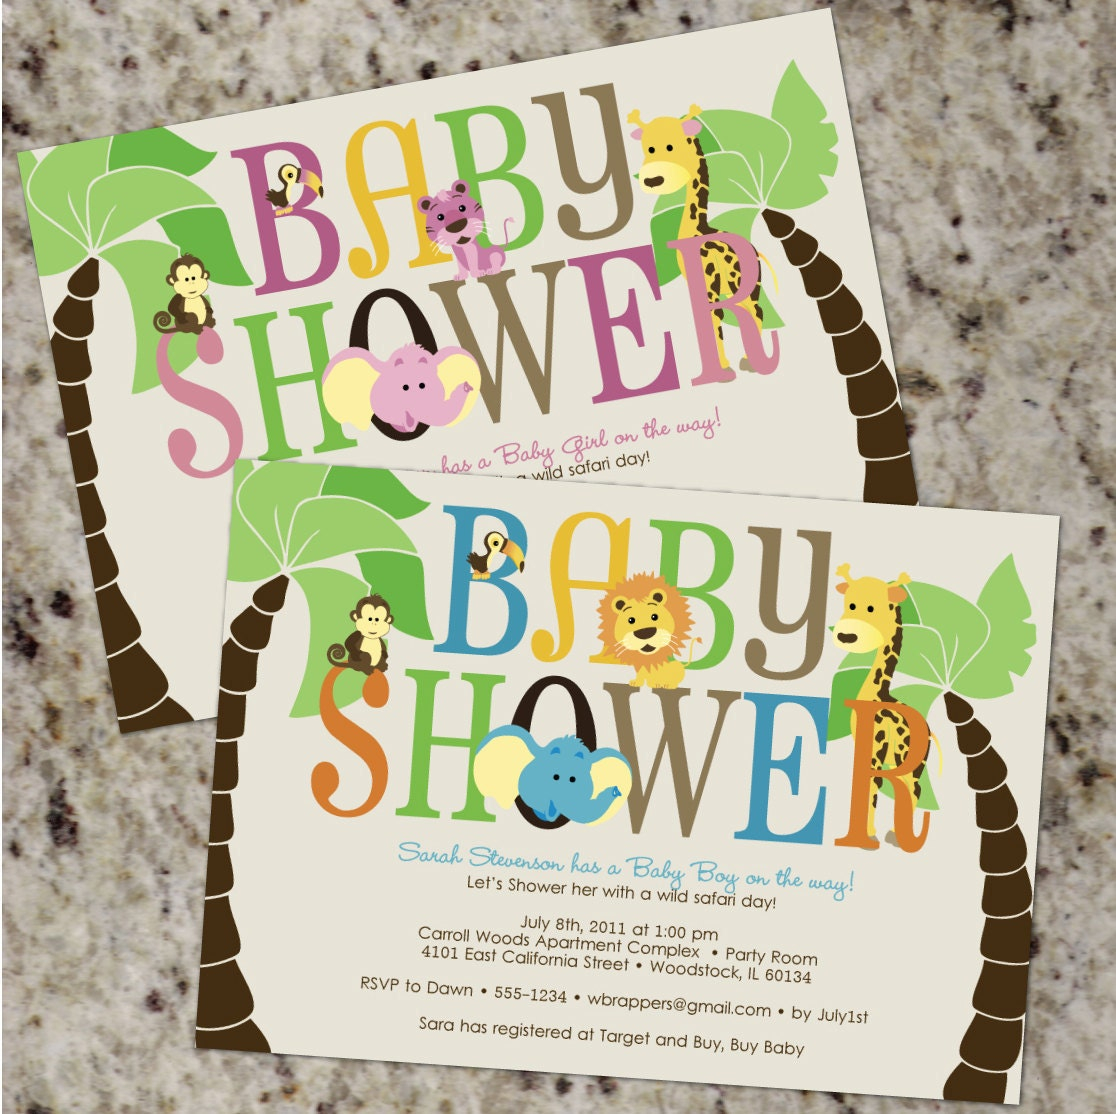 Etsy Baby Shower Invites is an amazing ideas you had to choose for invitation design